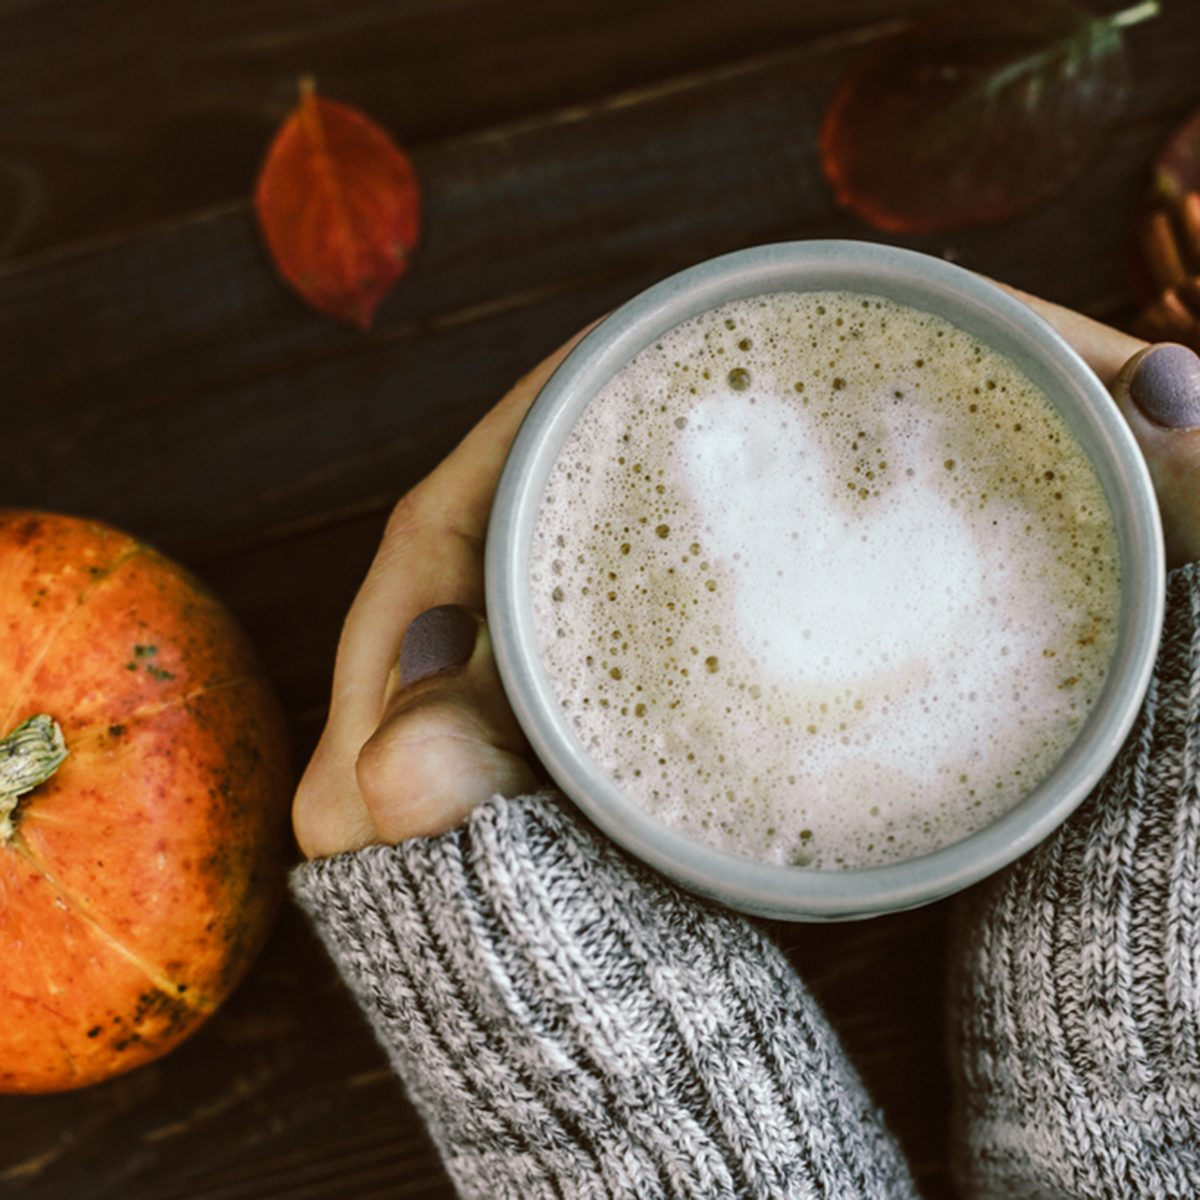 Cup of Spicy pumpkin latte in Woman's hands in gray sweater on the brown wooden table with red leaves. Cozy autumn mood; Shutterstock ID 472601899; Job (TFH, TOH, RD, BNB, CWM, CM): TOH